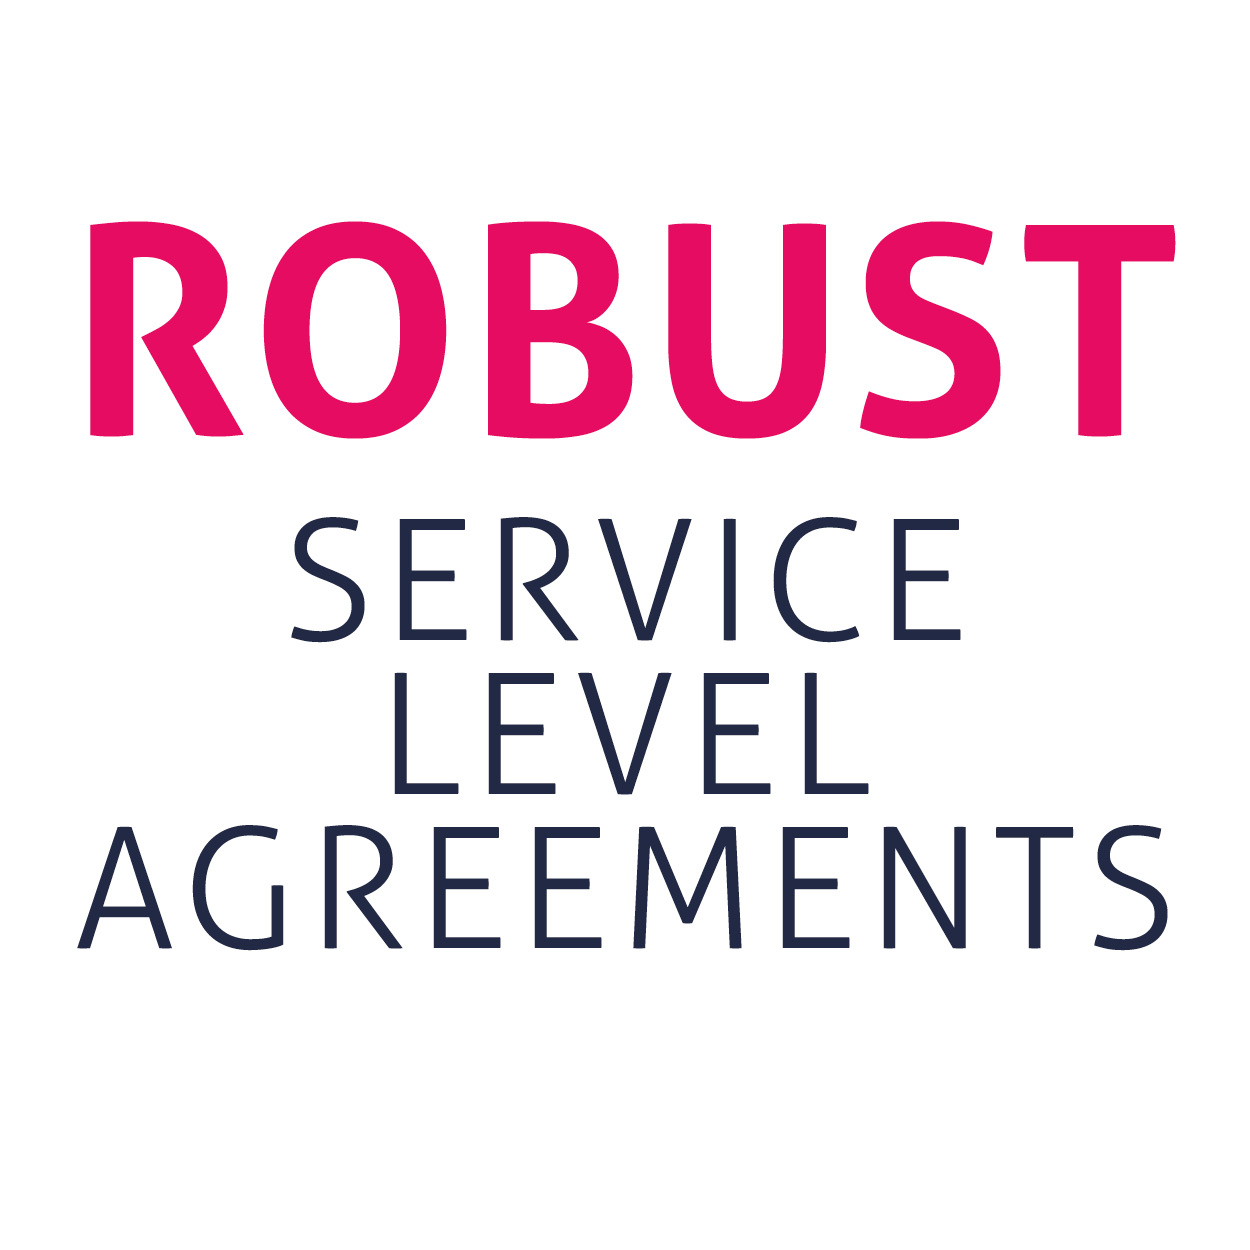 Robust service level agreements